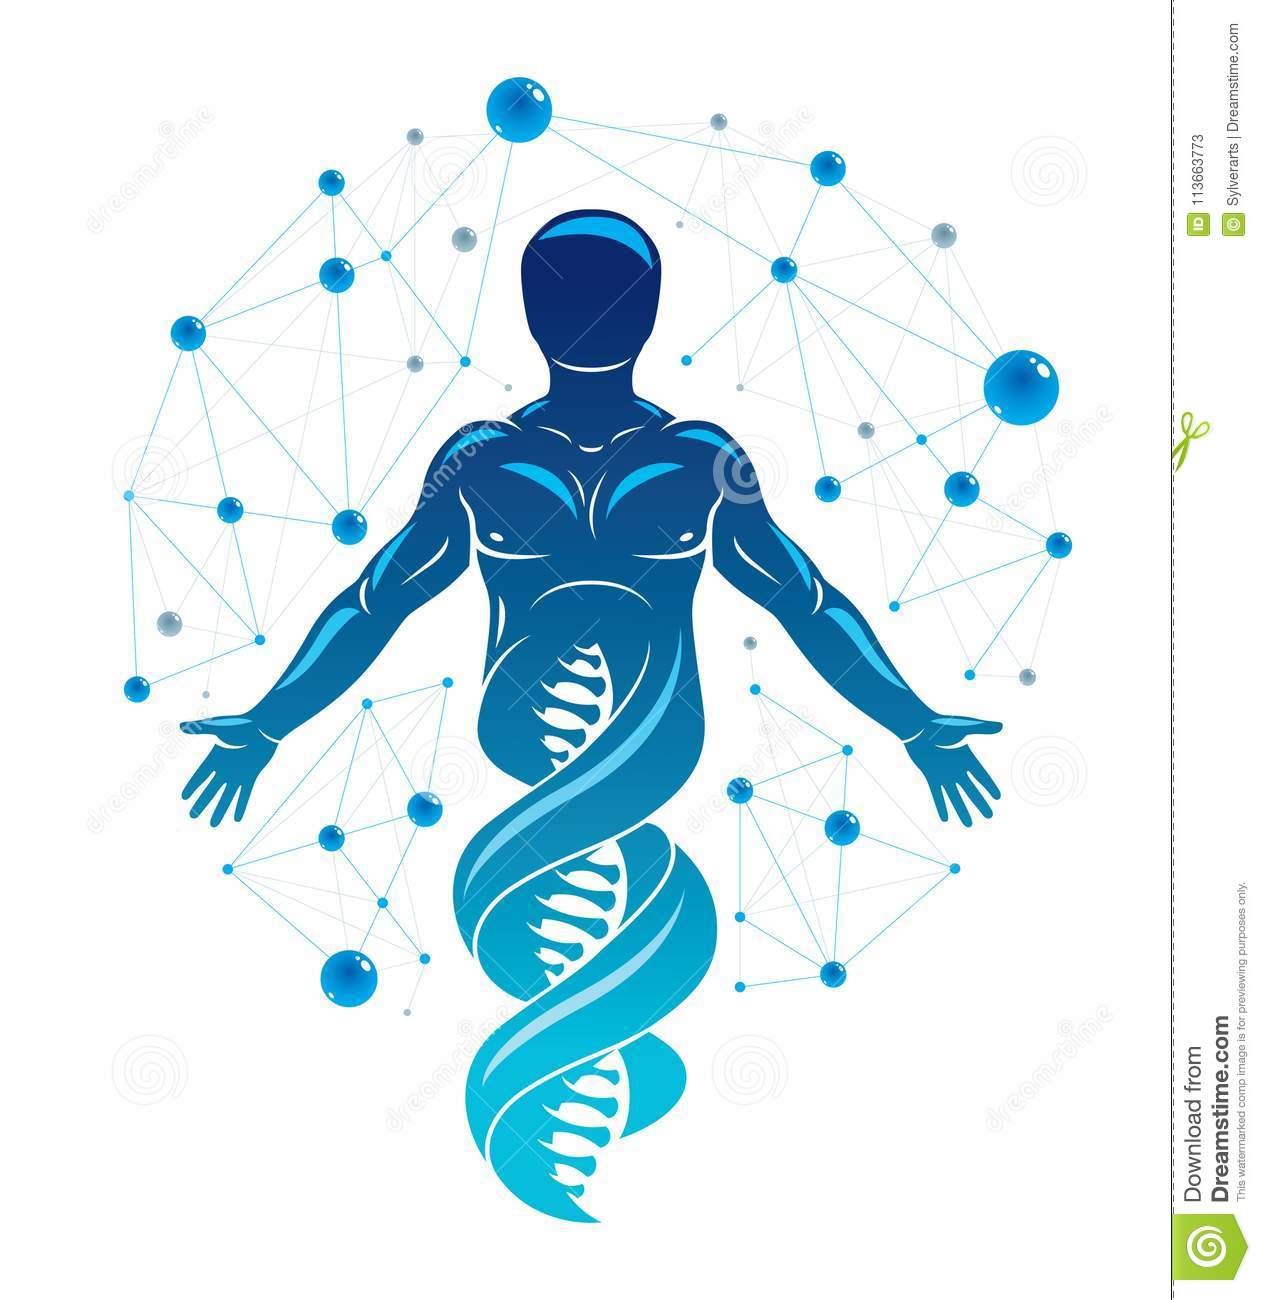 Vector Graphic Illustration Of Human Made As Dna Strands